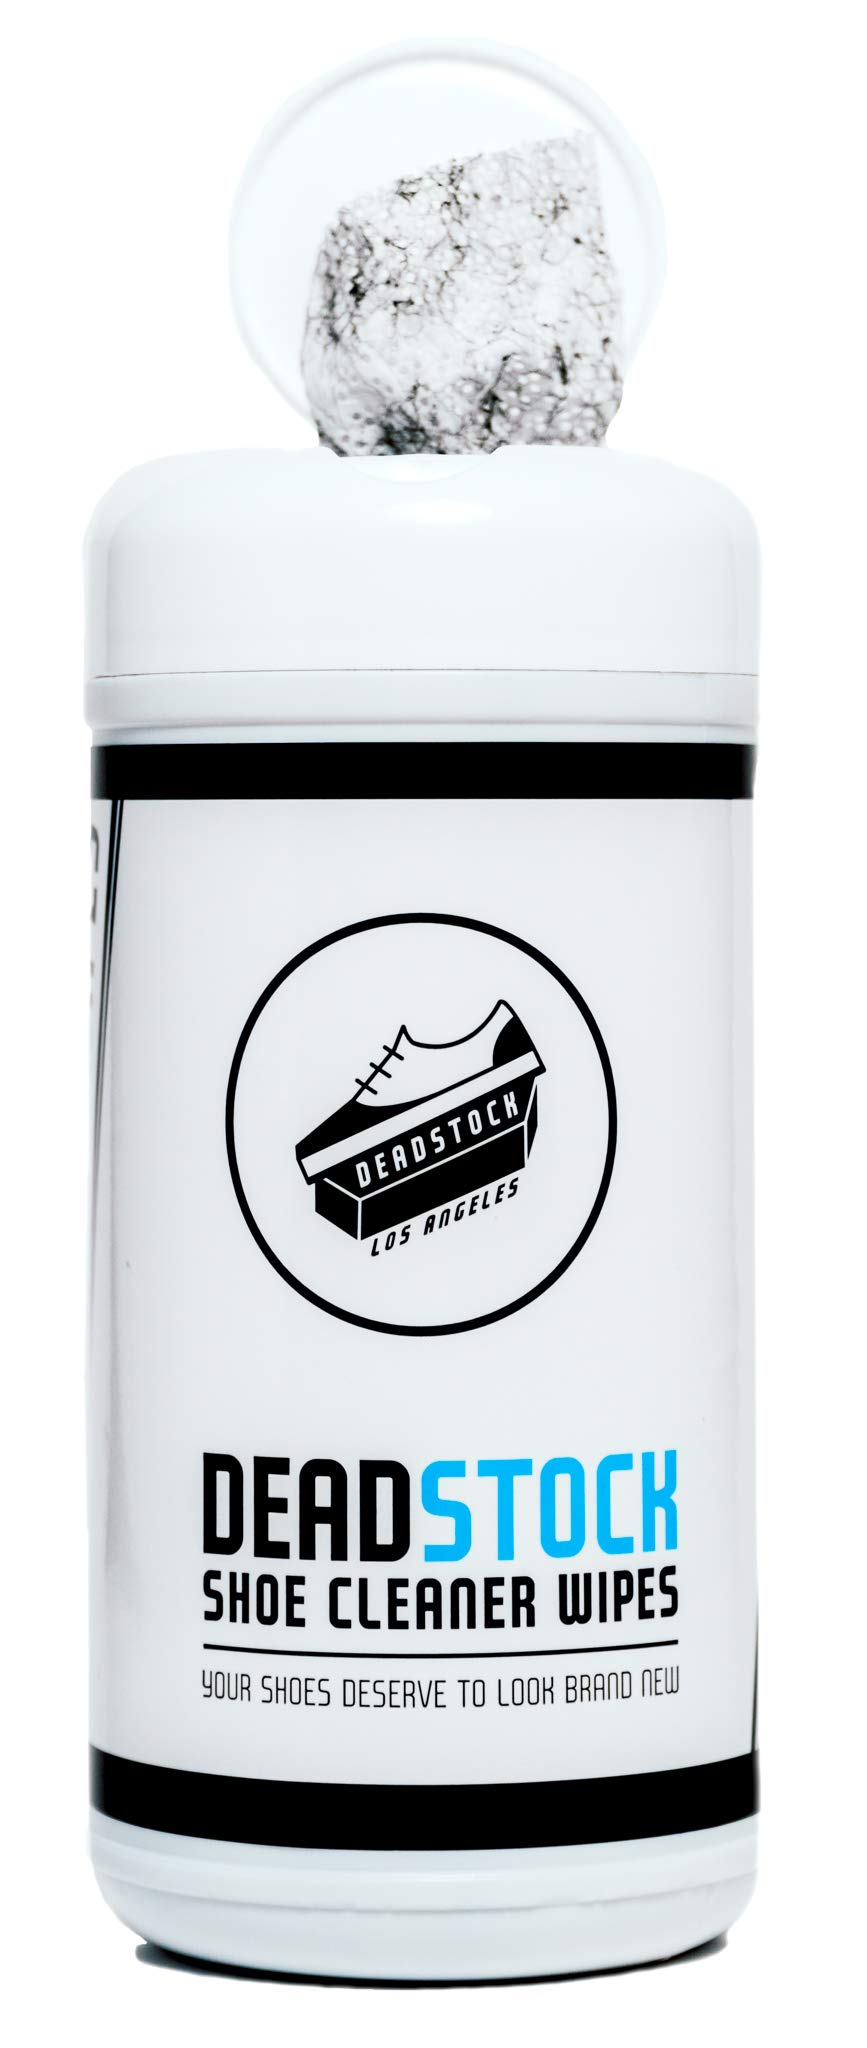 Deadstock Los Angeles Shoe Cleaner Wipes - 30 Packaged Sneaker Wipes - Removes Dirt Buildup, Stains, Scuffs and more! - Safe on Leather, Canvas, Nylon, Vinyl, Sneaker Midsoles and MORE!